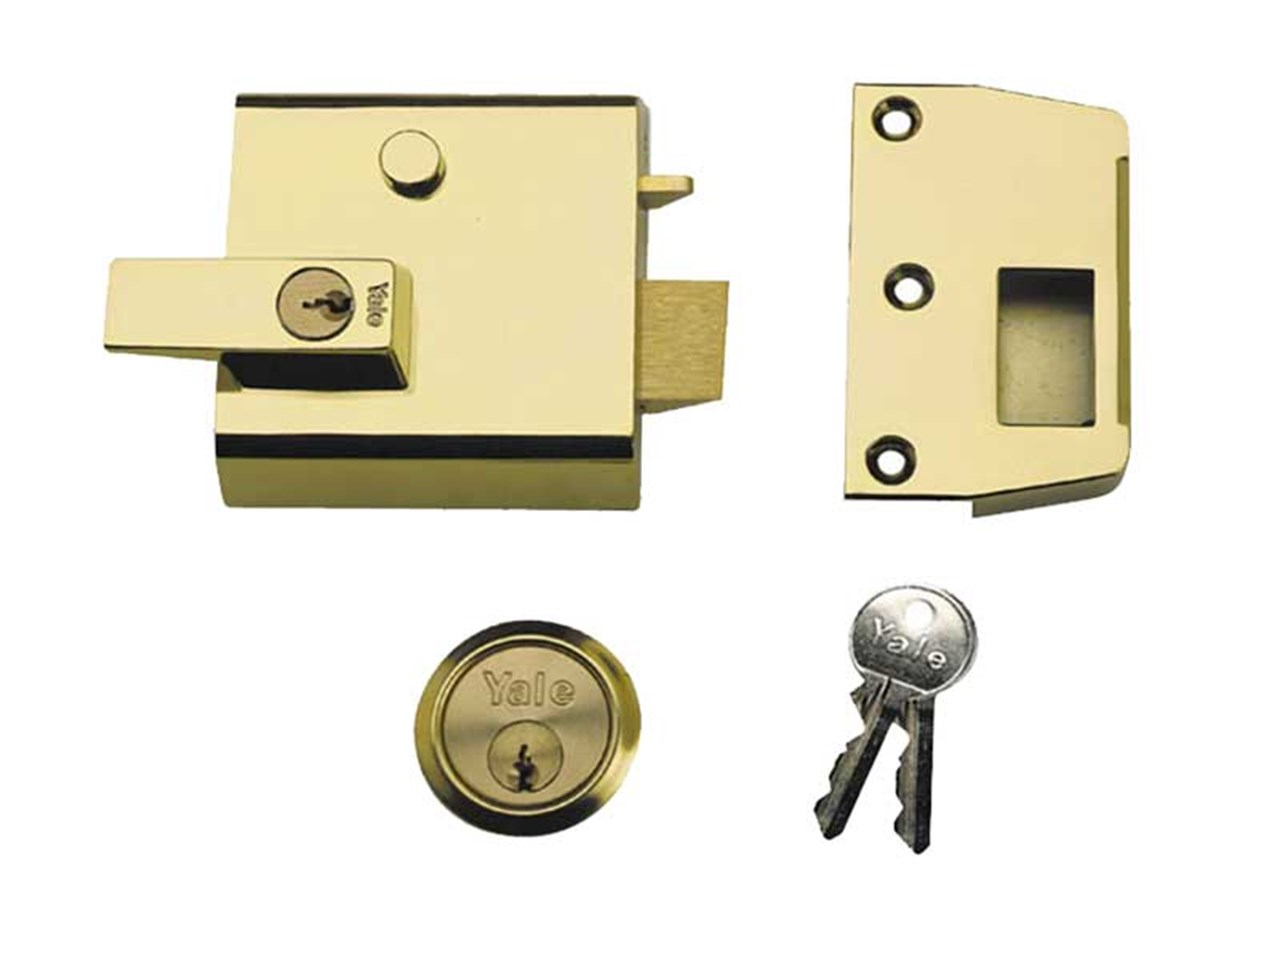 Yale Yalp1b P1 Double Security Nightlatch Brasslux Finish